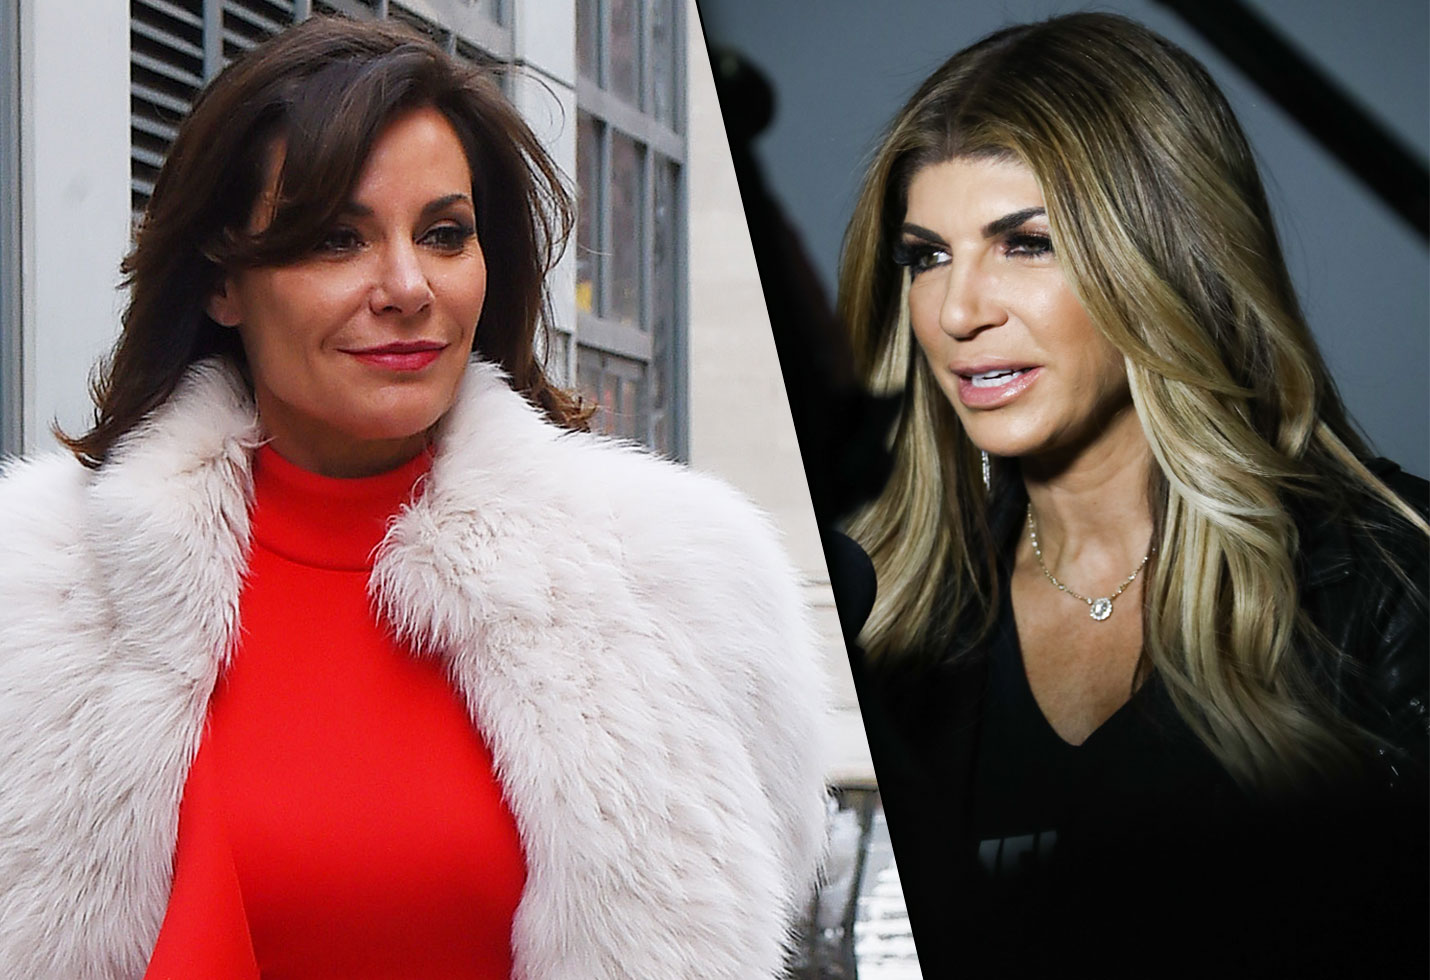 teresa giudice joe luann de lesseps countess cabaret advice